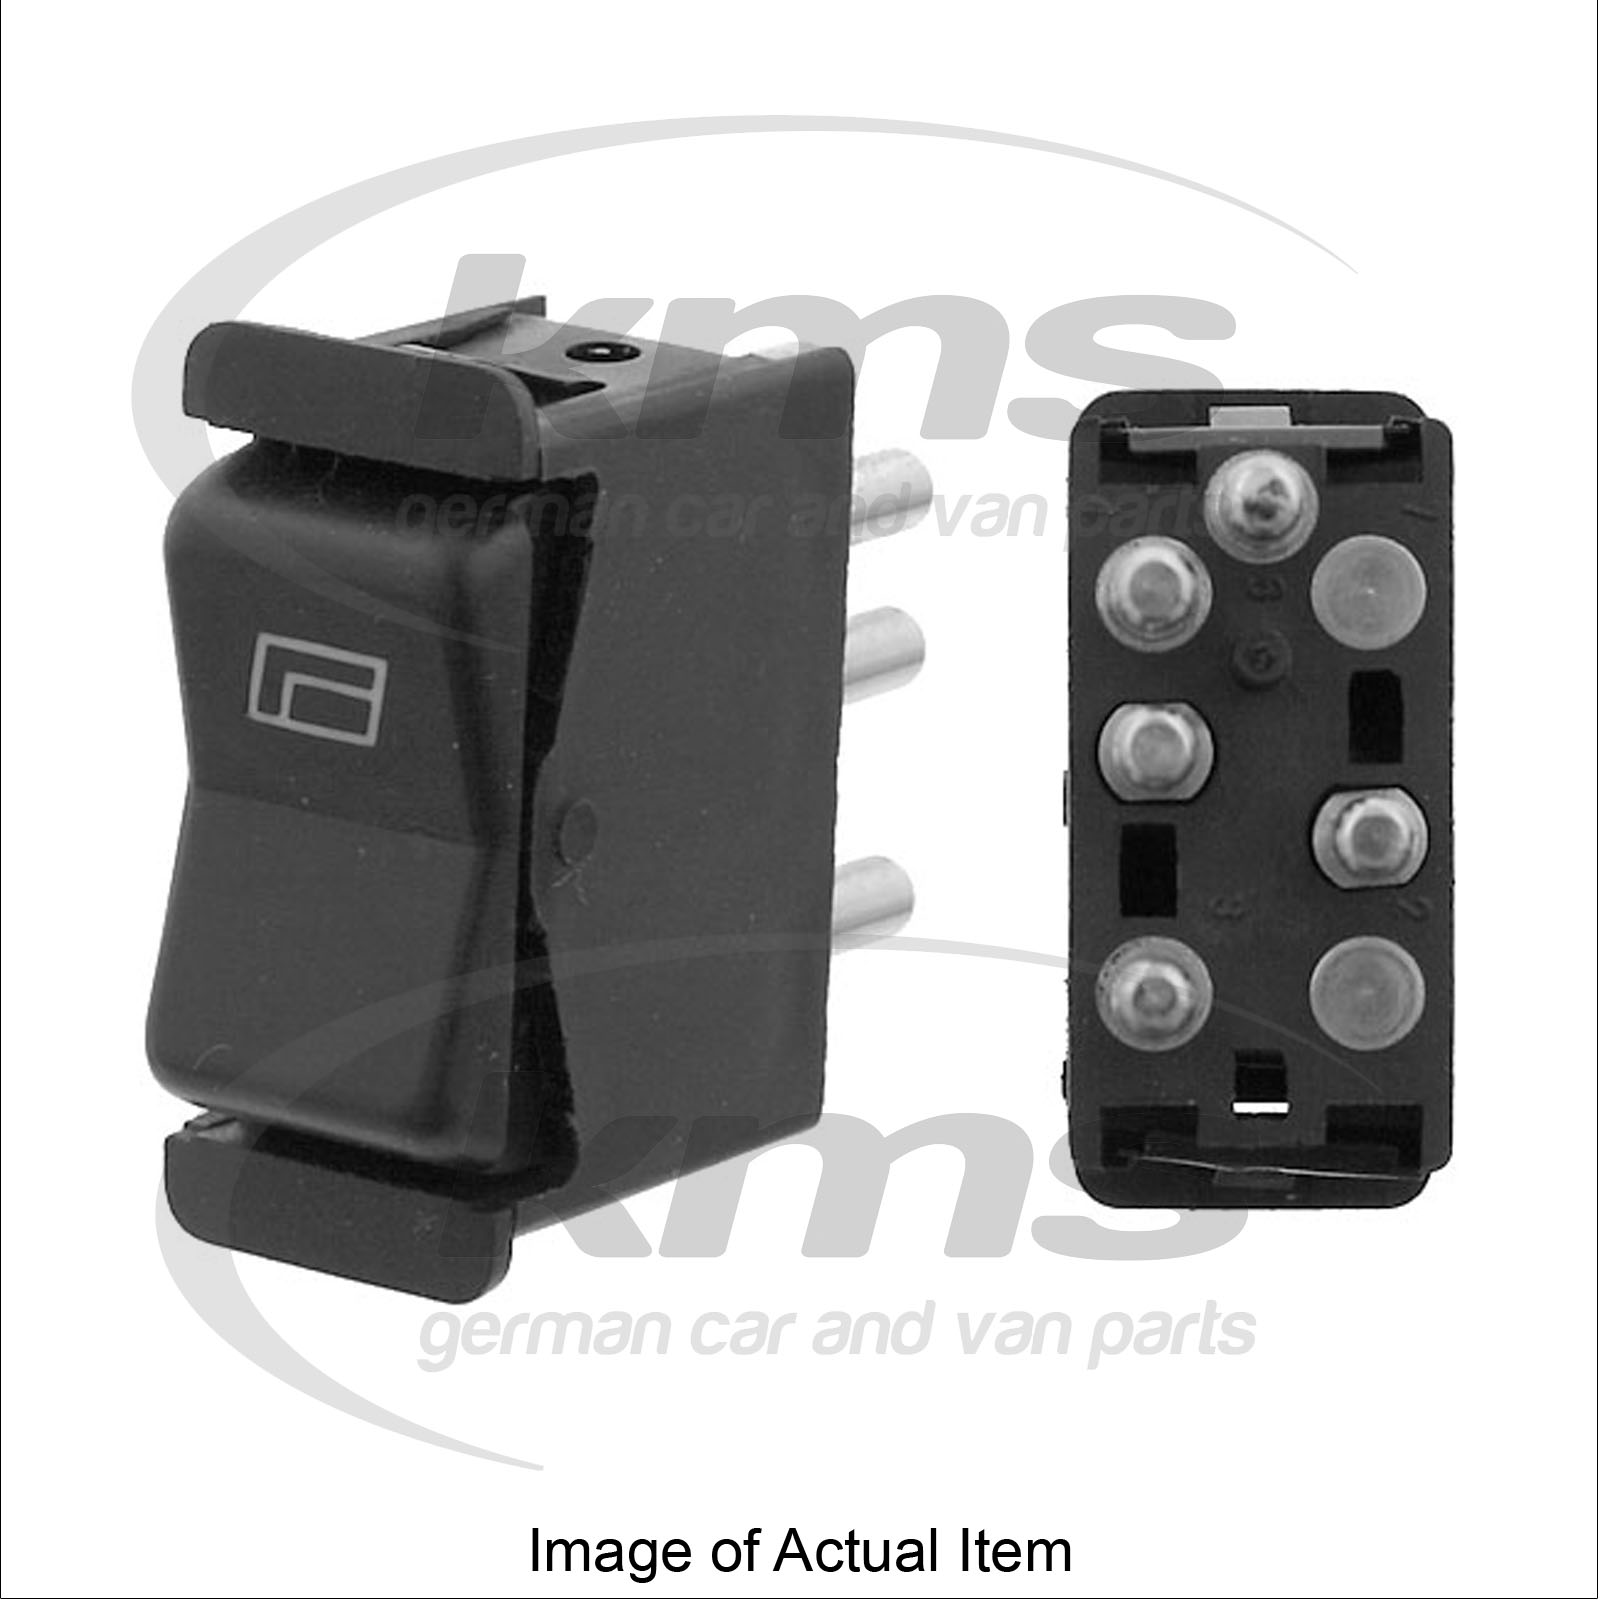 Electric window switch mercedes benz 190 series saloon for Mercedes benz window switch